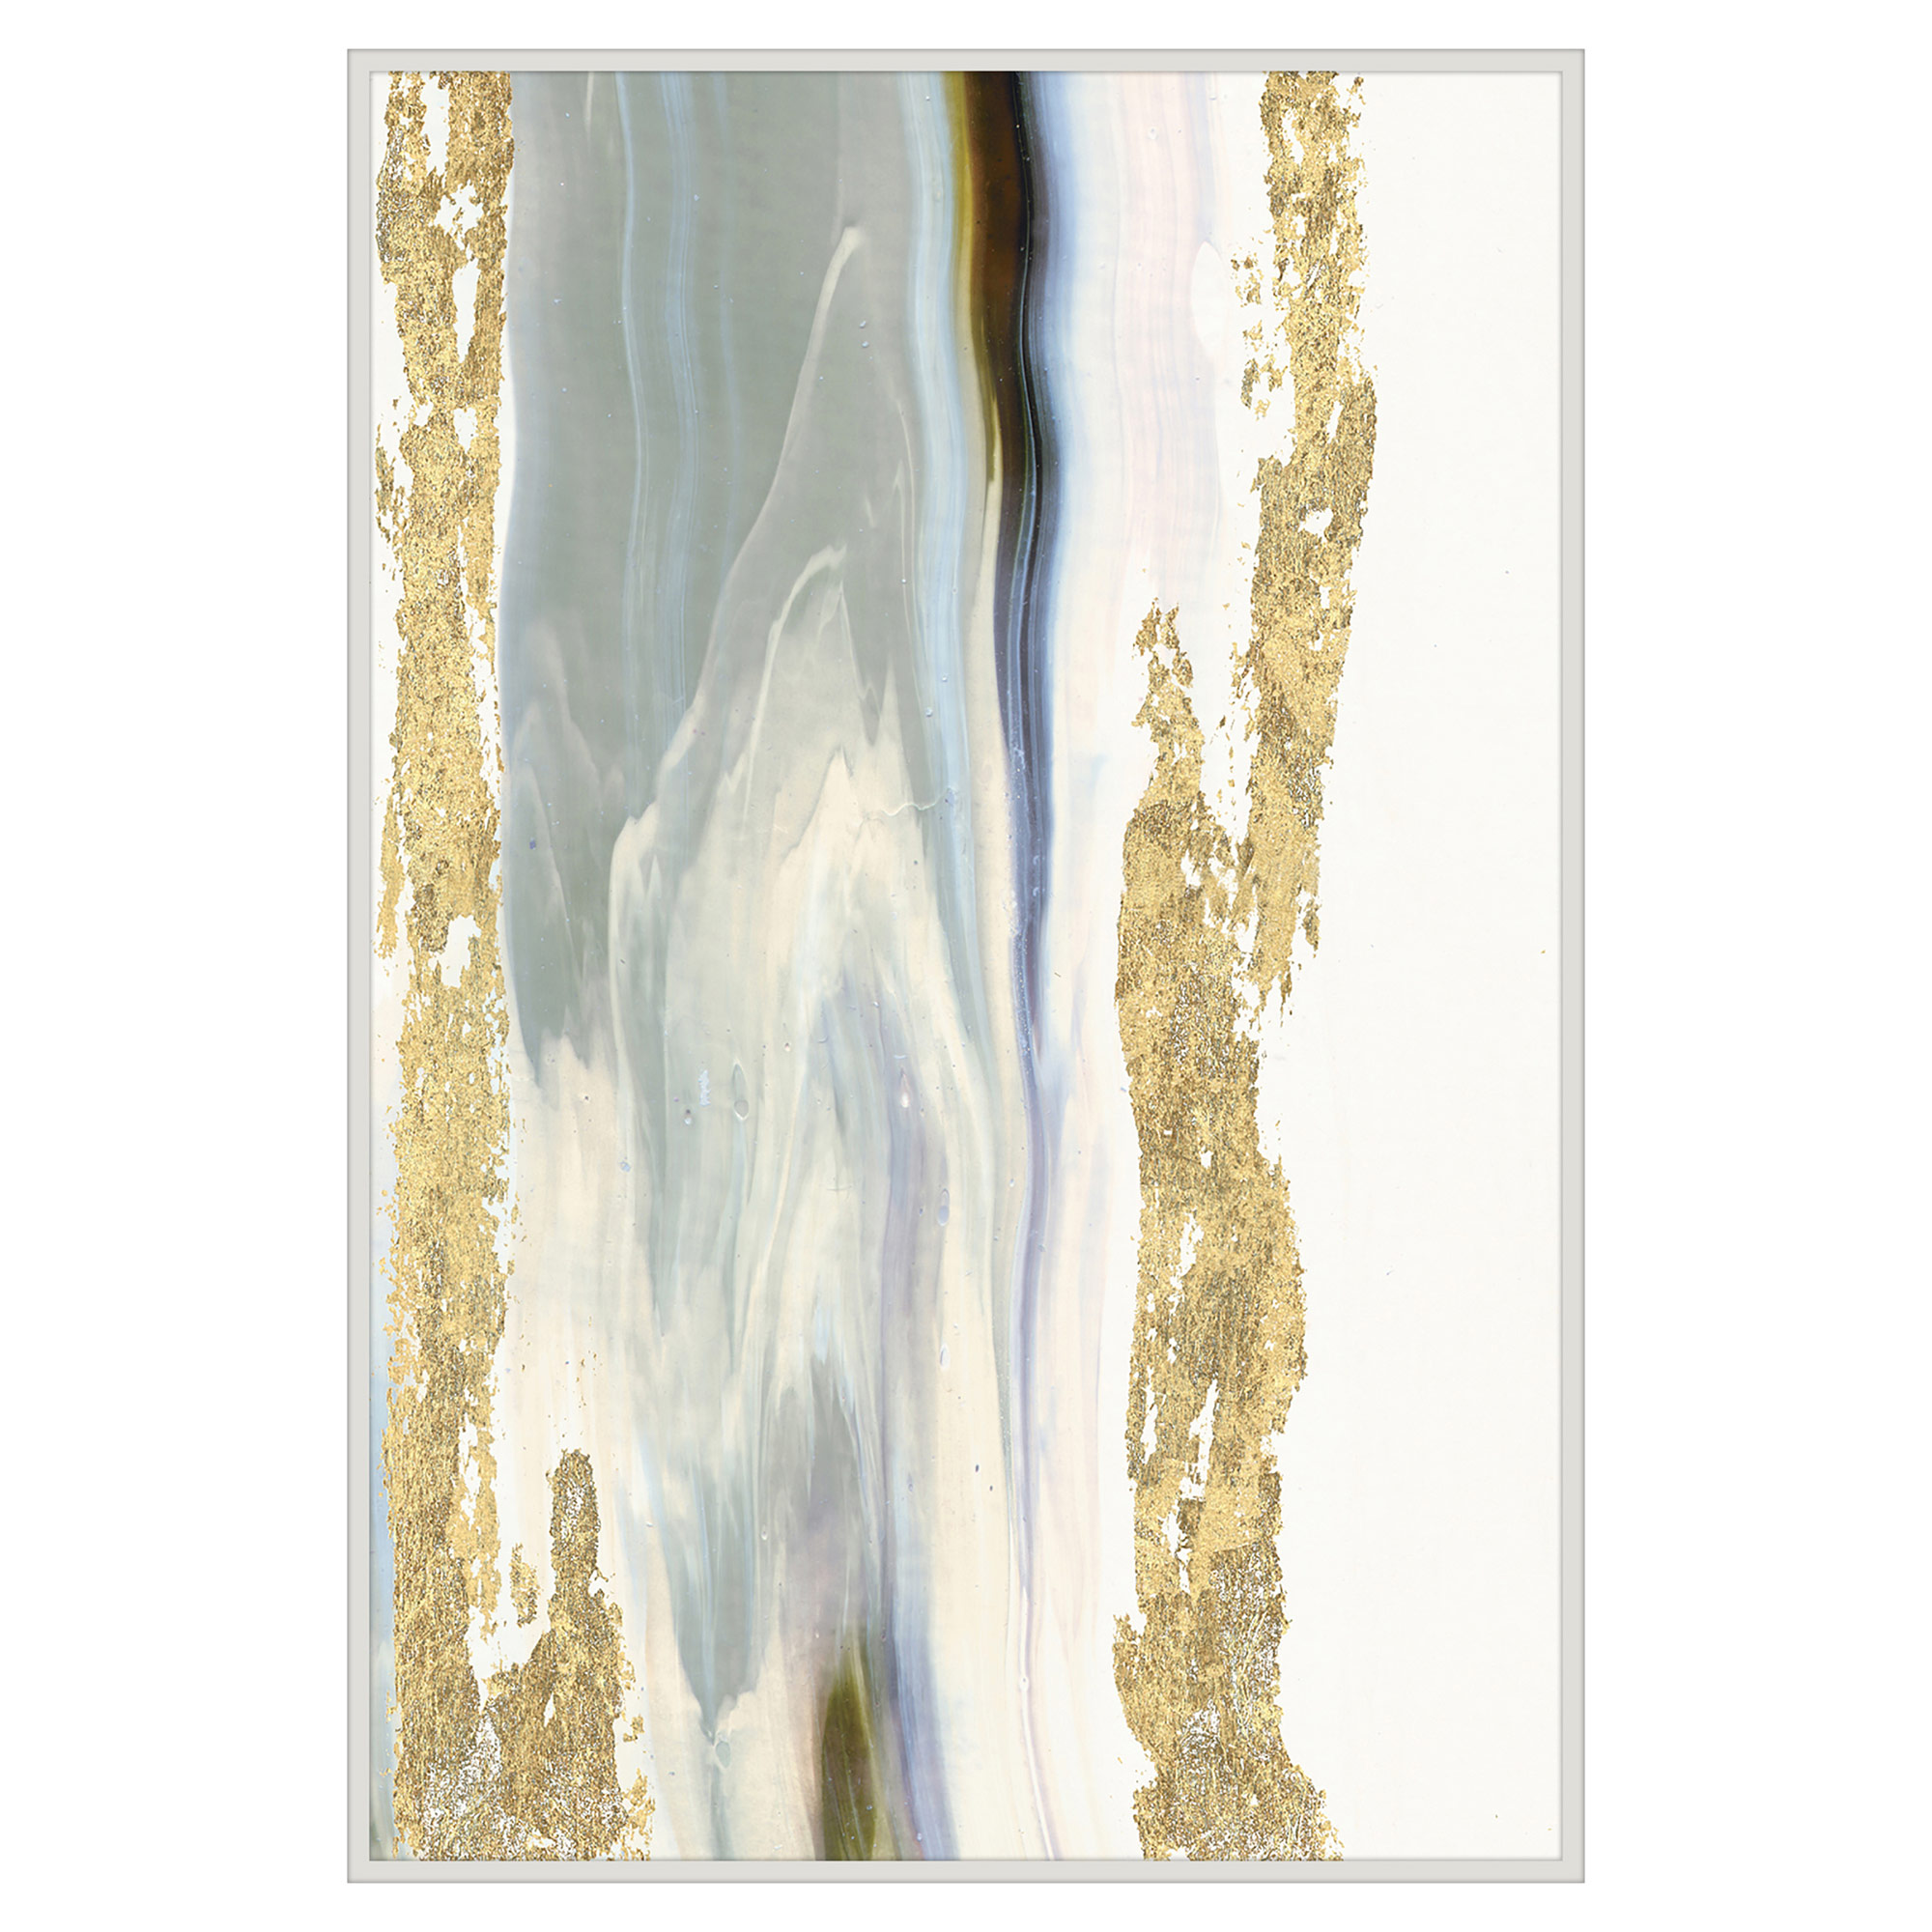 Designer Wall Art - Eclectic Wall Art | Kathy Kuo Home